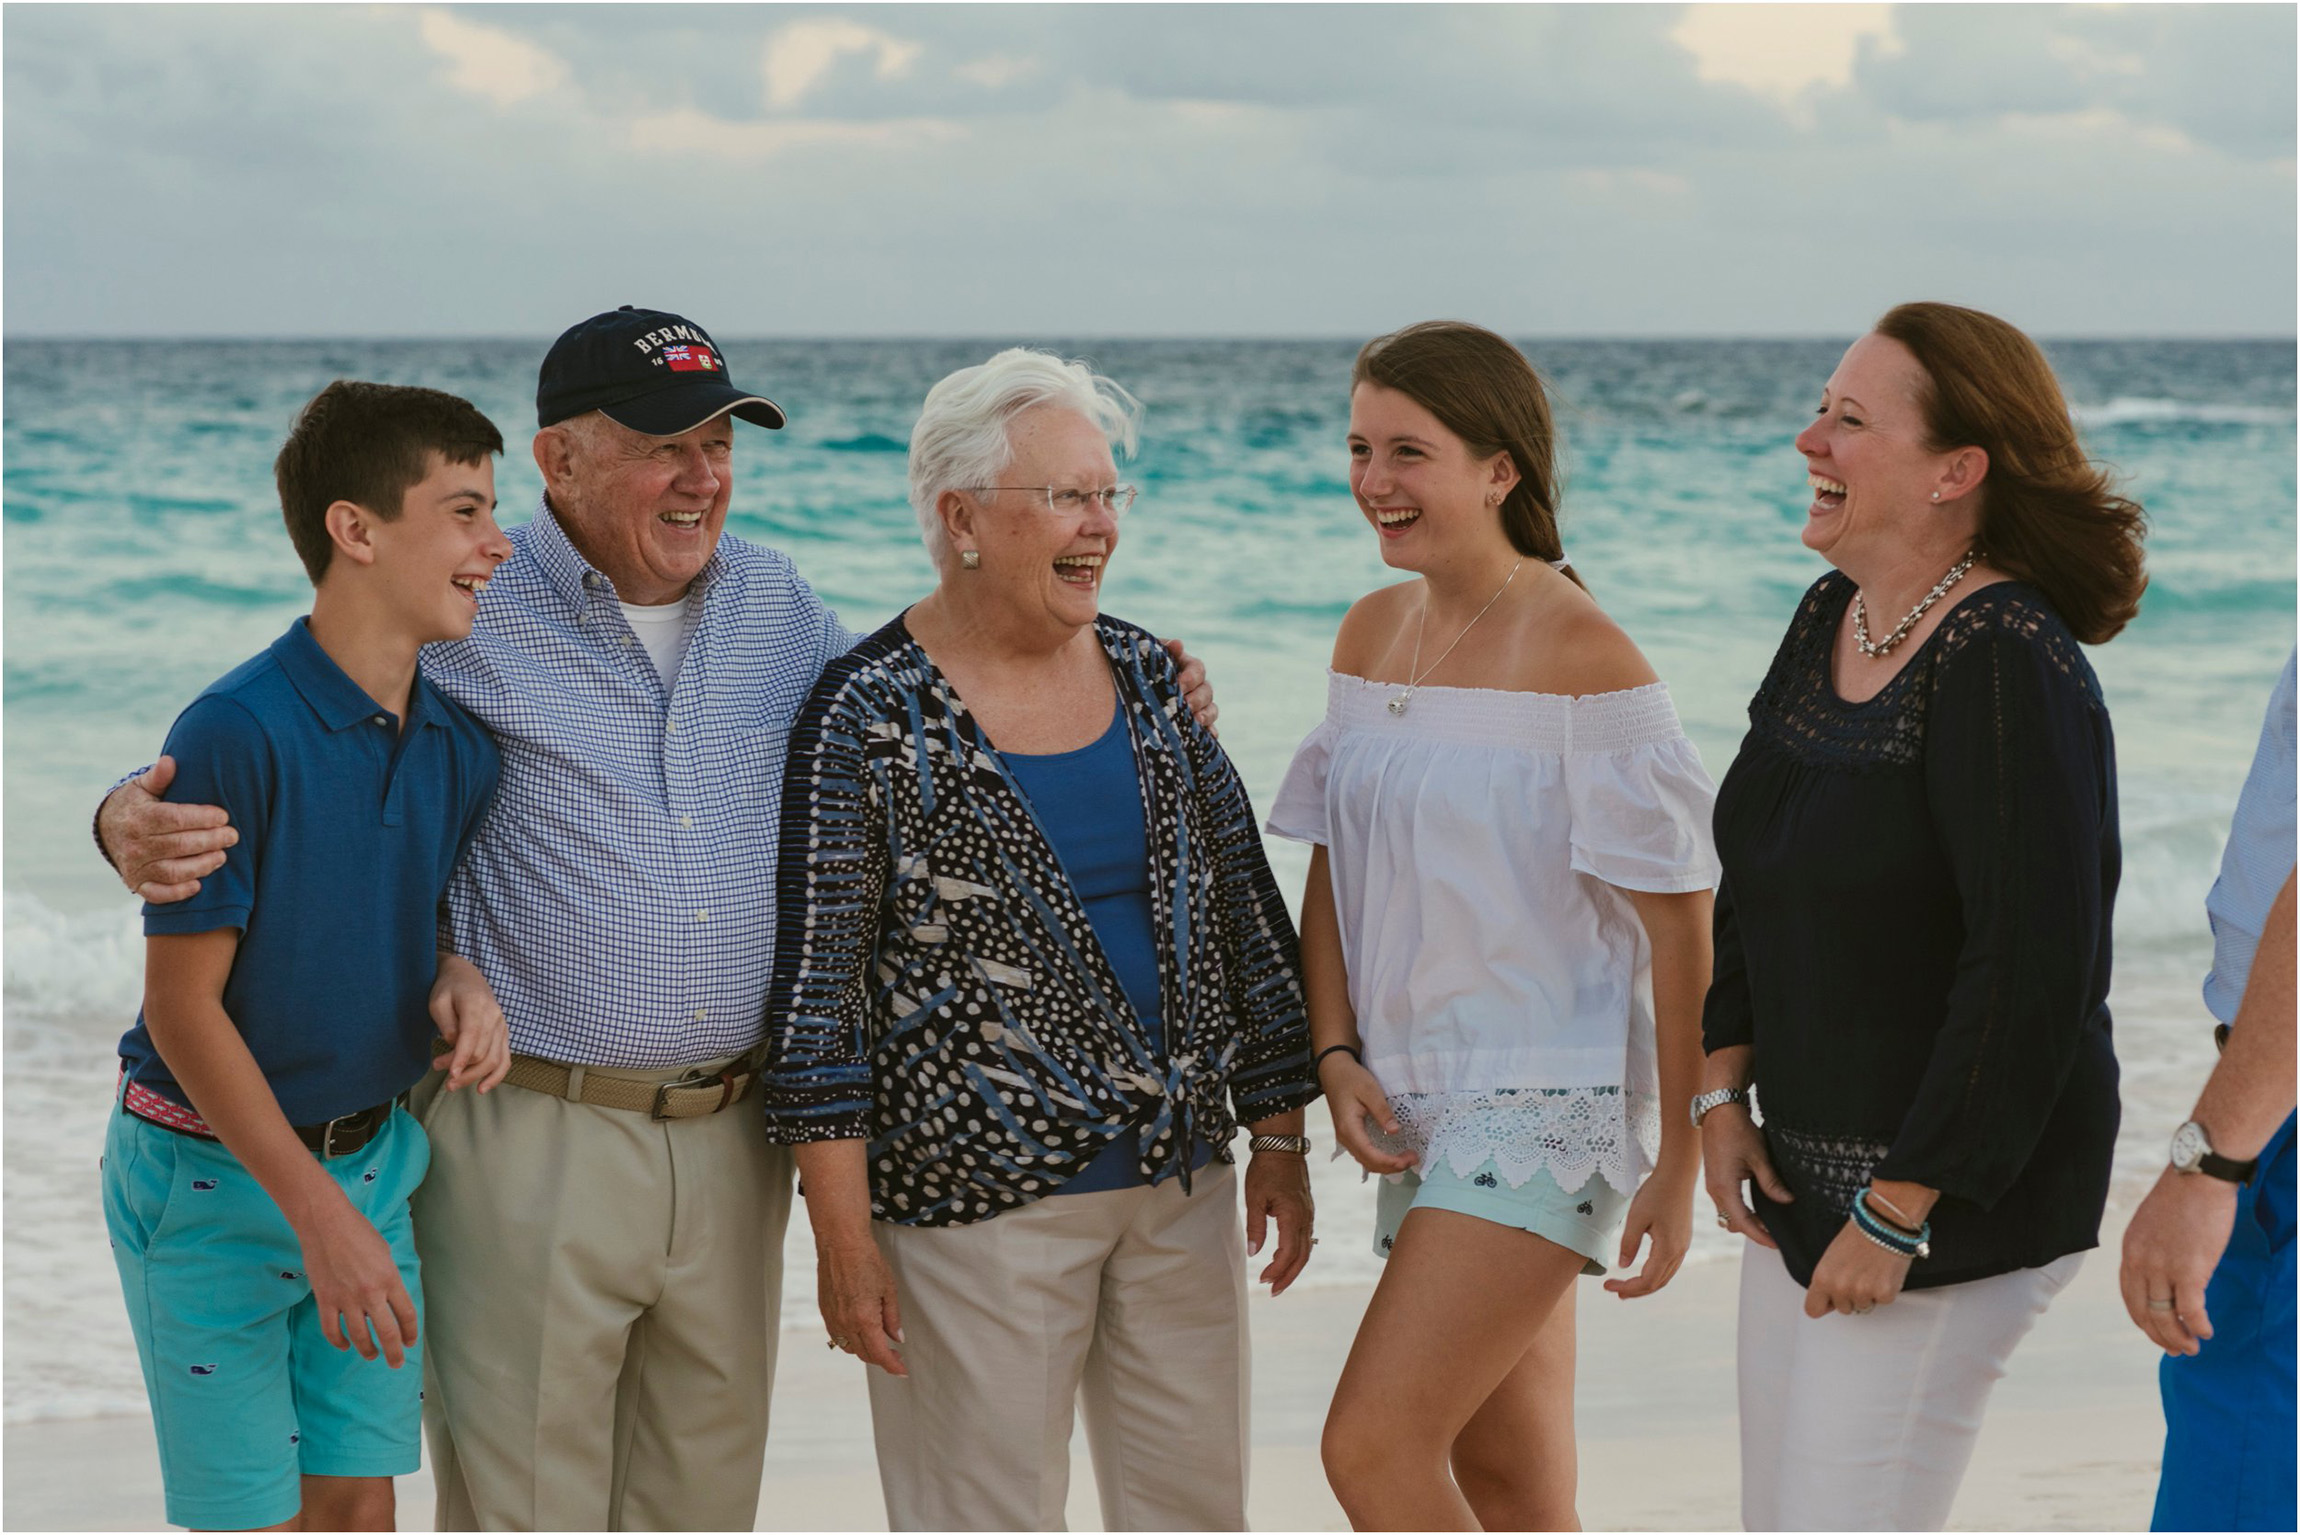 Fiander Foto_Bermuda Photographer_Horseshoe Bay Beach__Alicia's Family_019.jpg